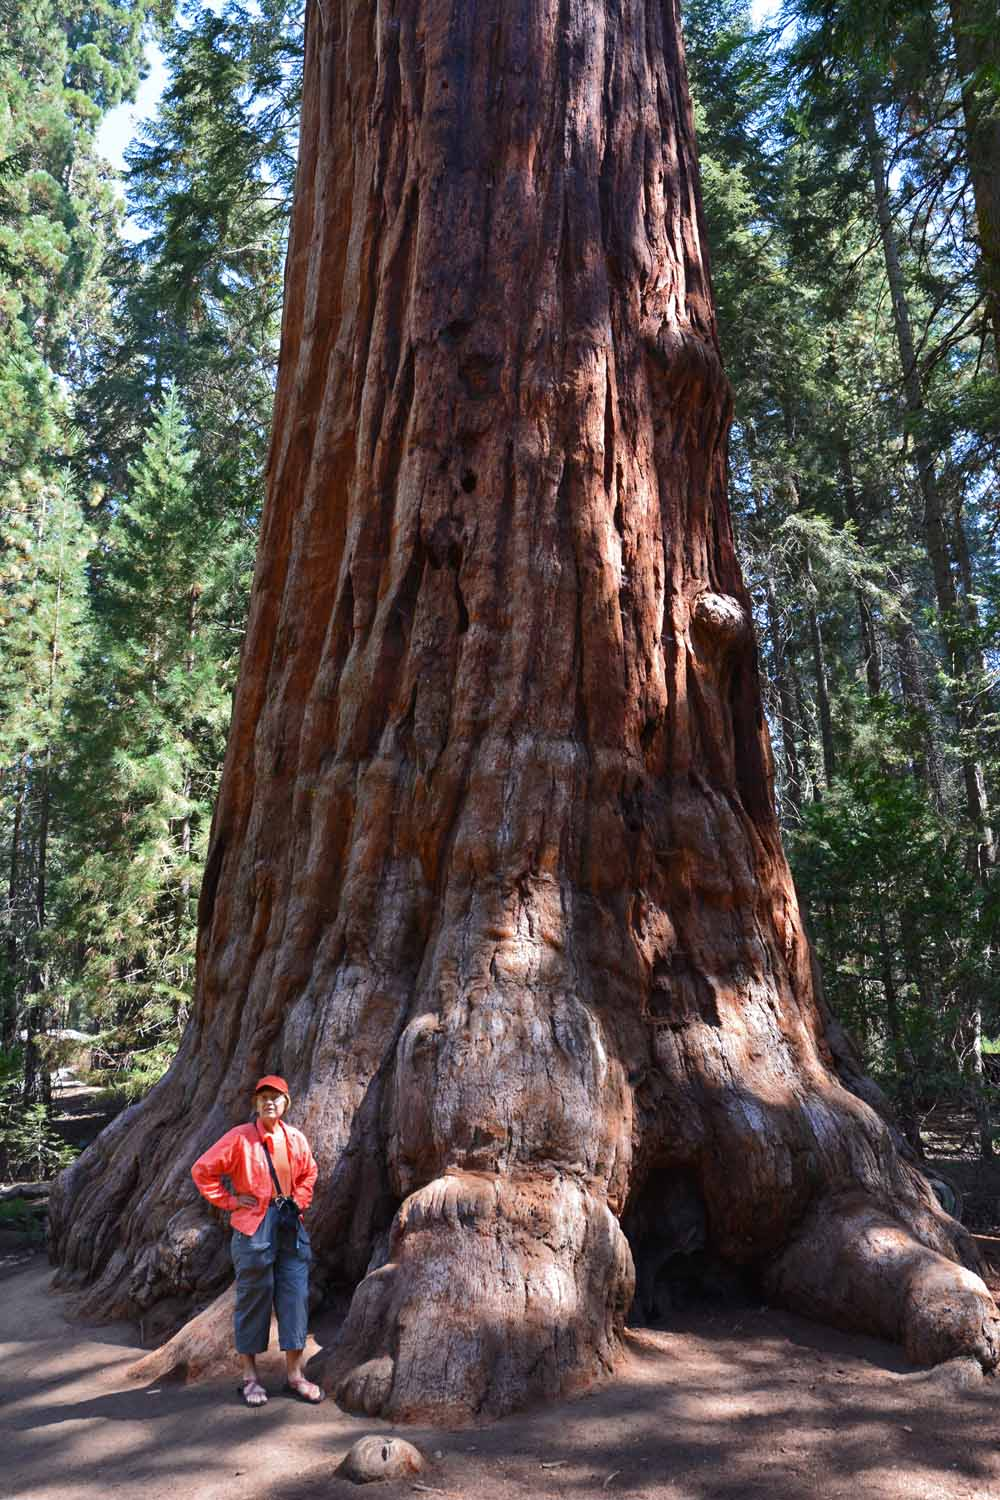 These large Sequoia trees are awesome